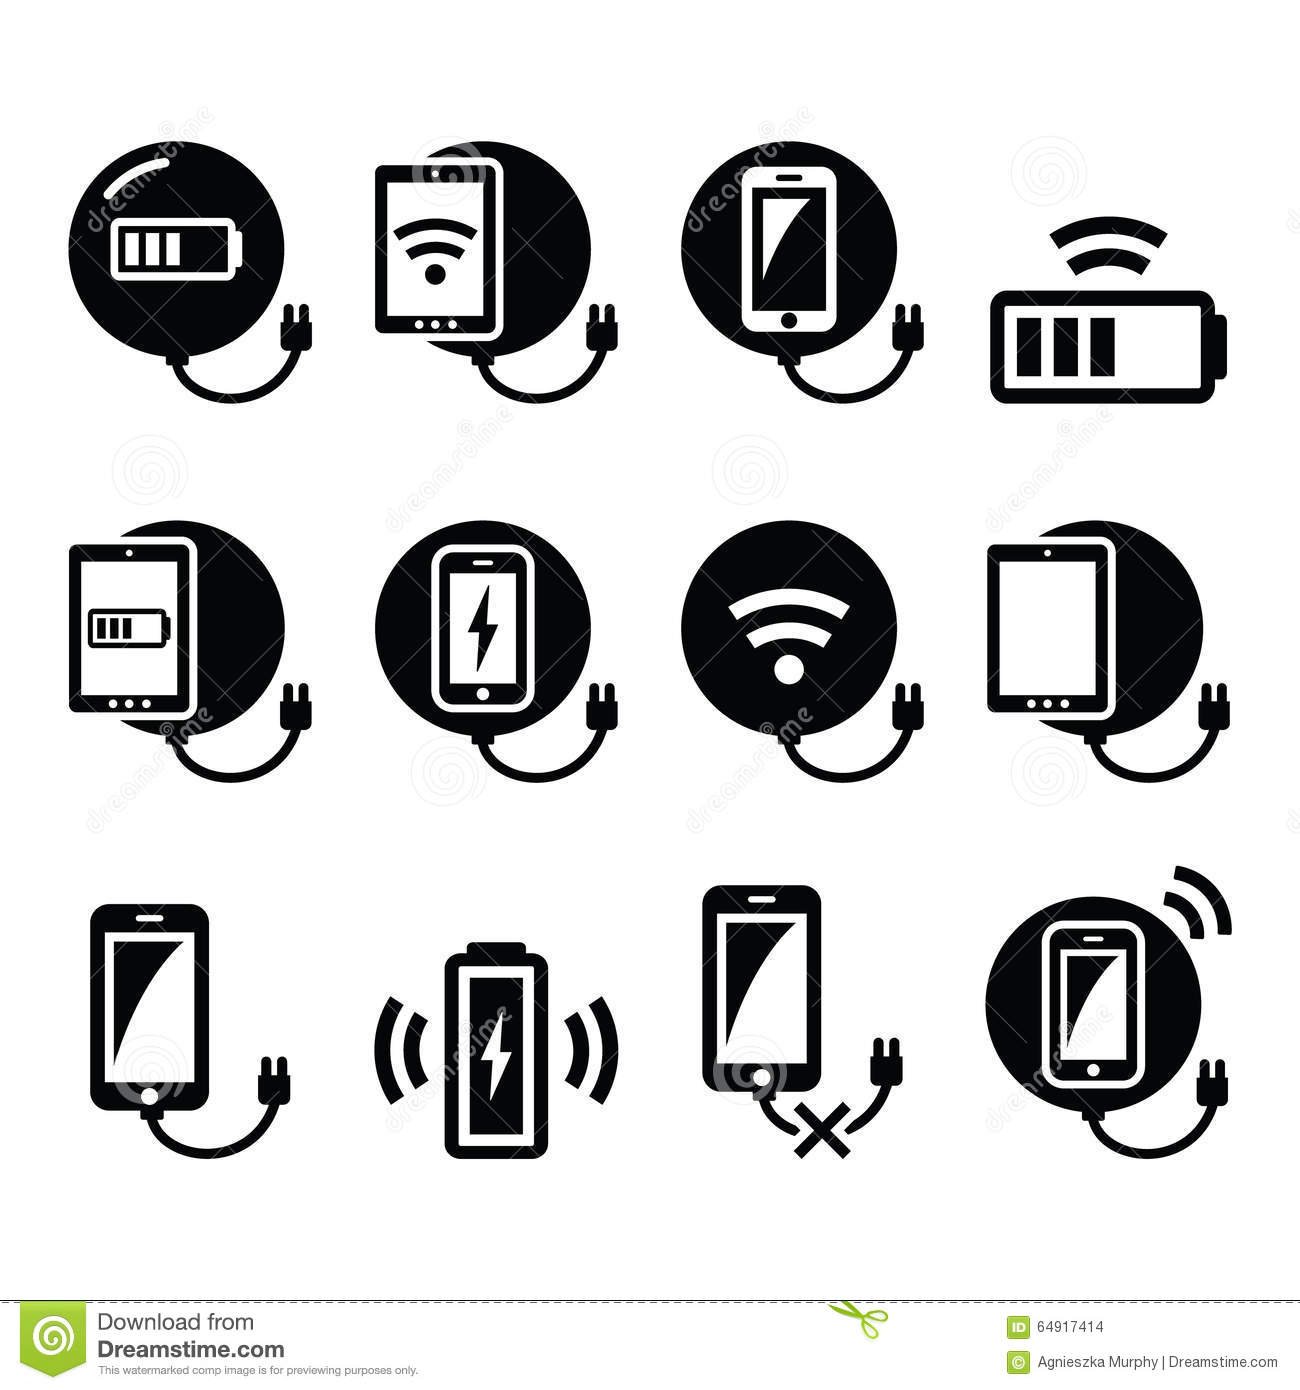 cooper single pole switch wiring diagram images phone icons wiring diagrams pictures wiring diagrams